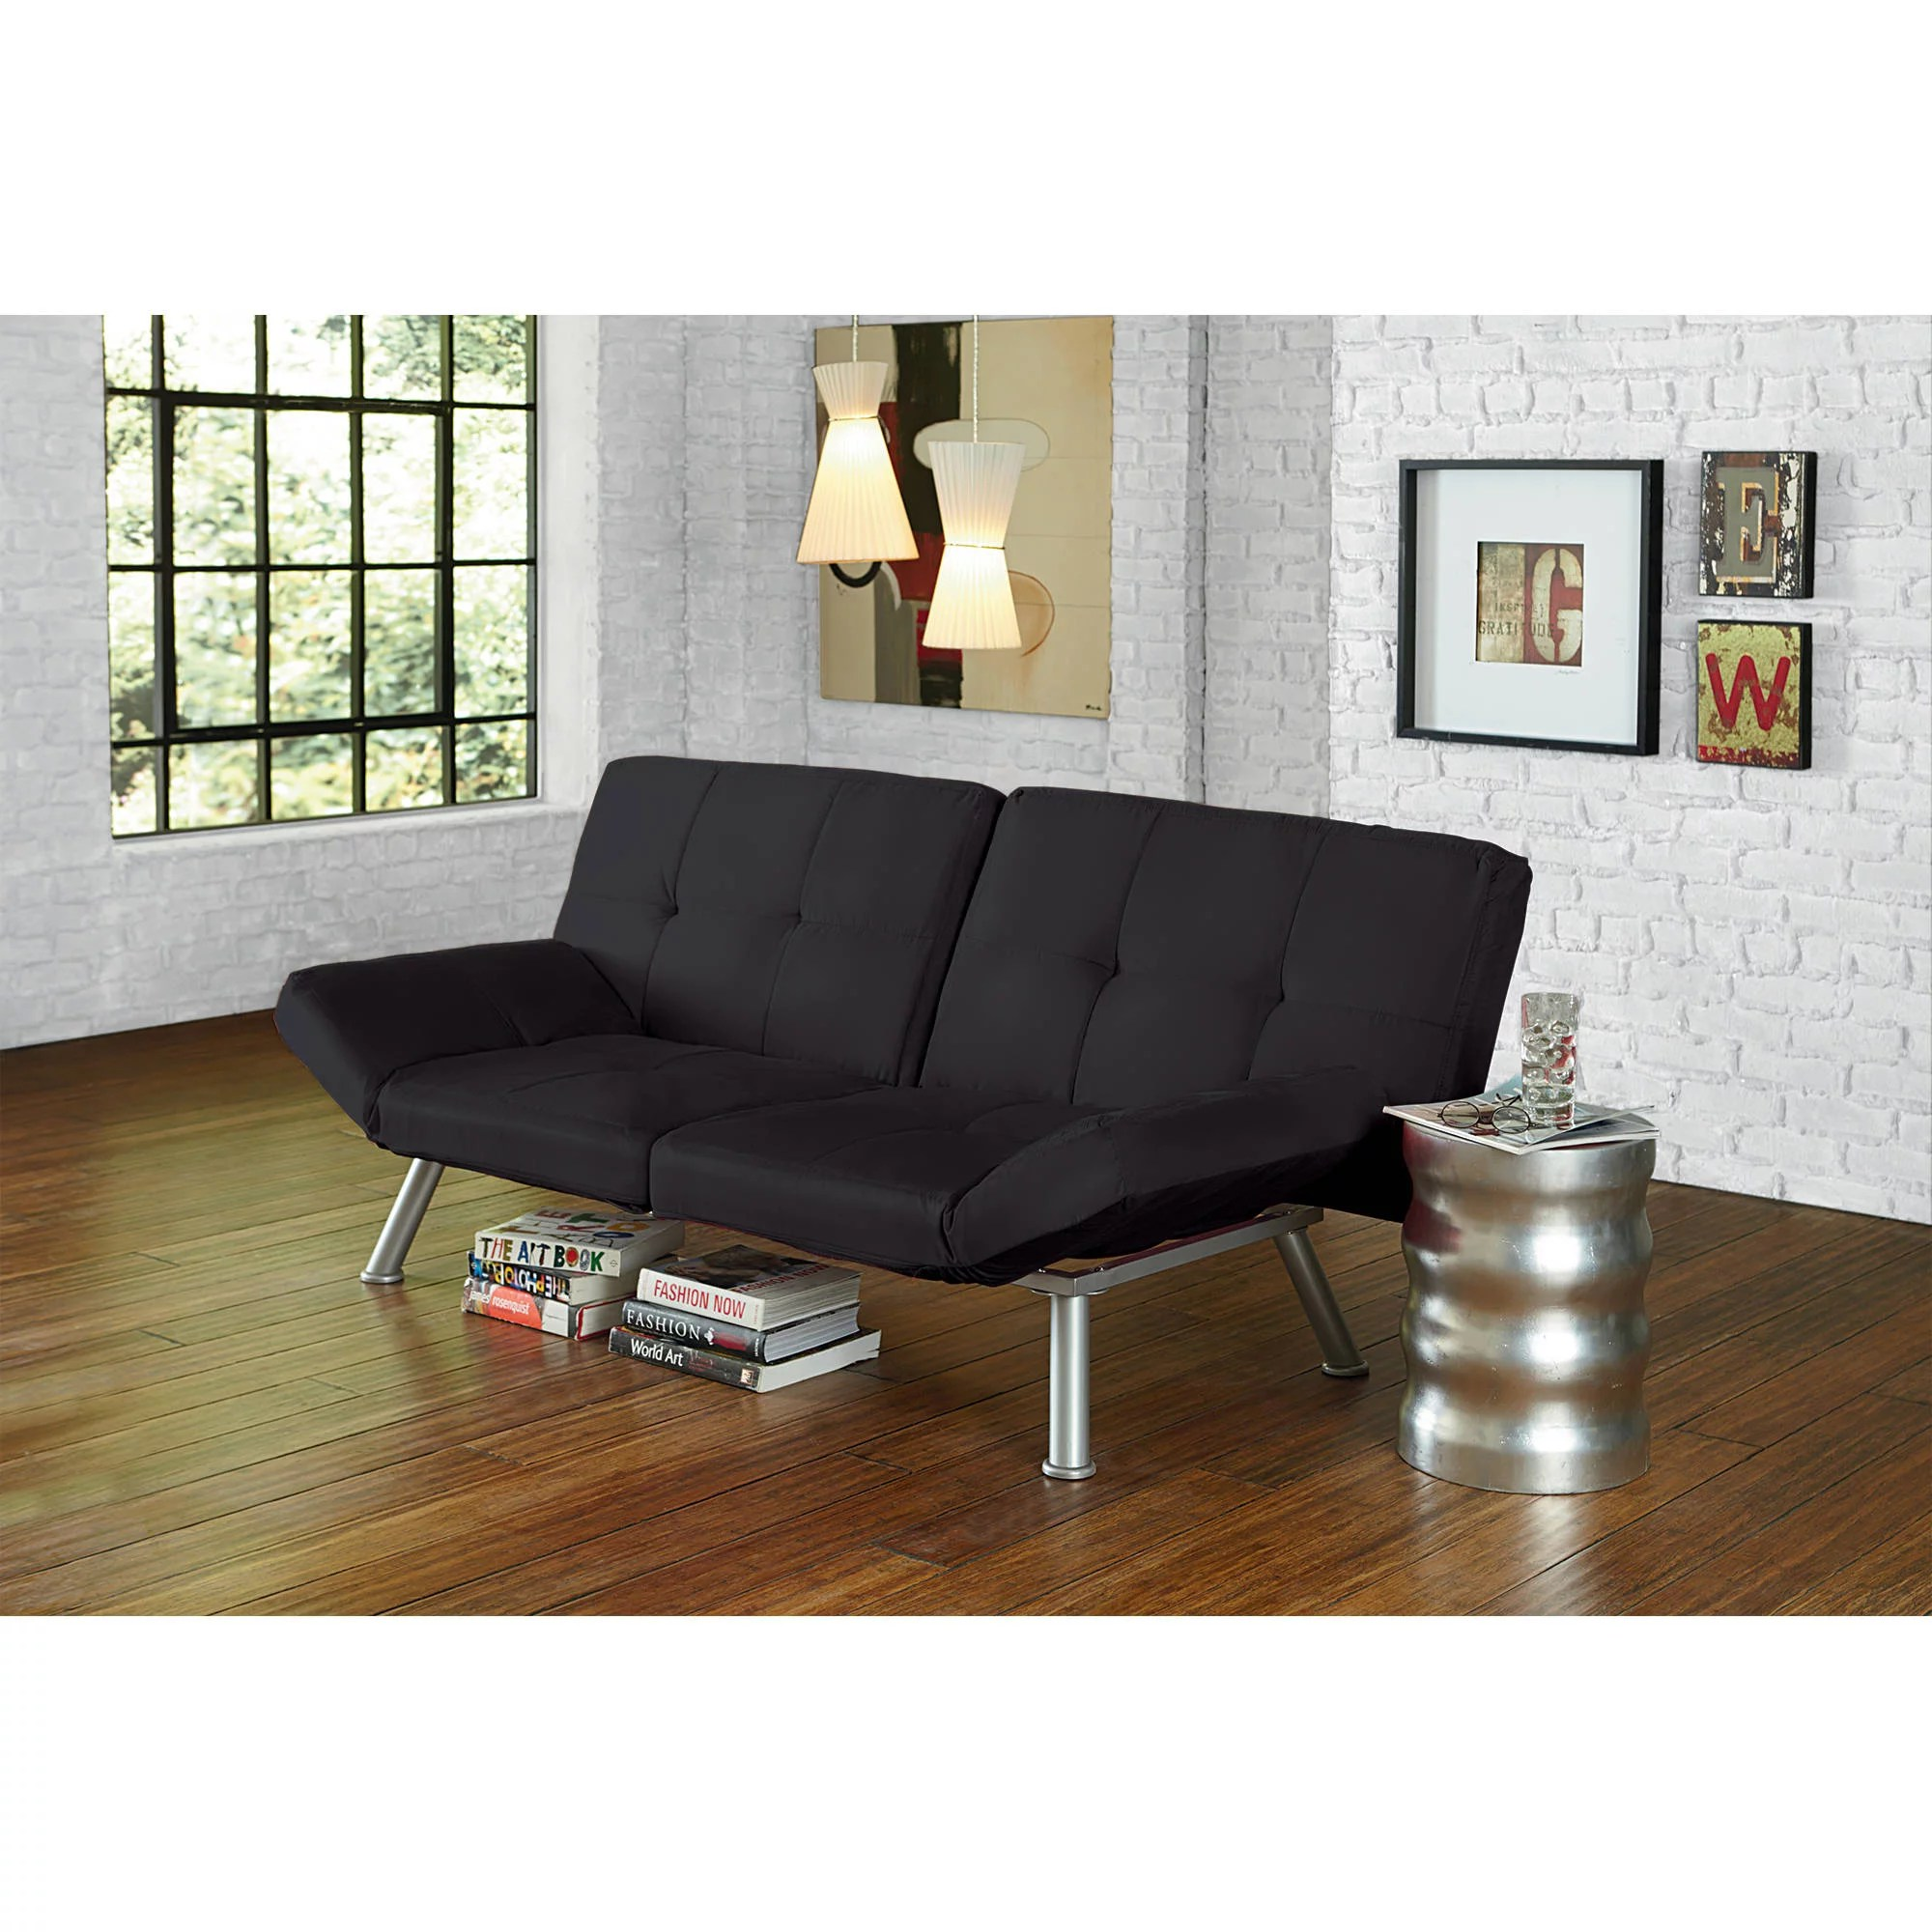 Mainstays Contempo Futon Multiple Colors  Walmartcom